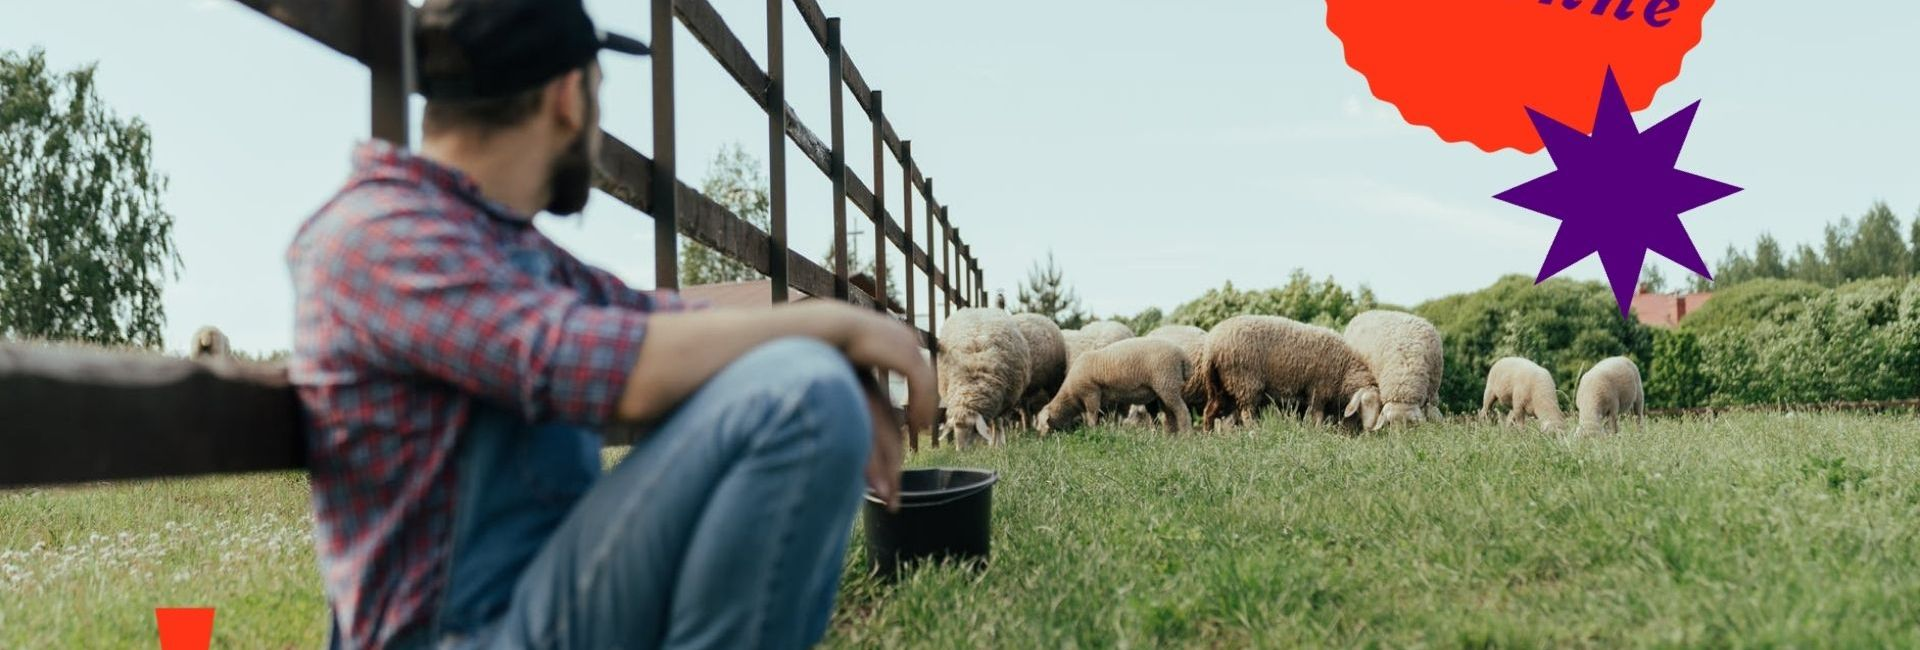 homme-campagne-moutons